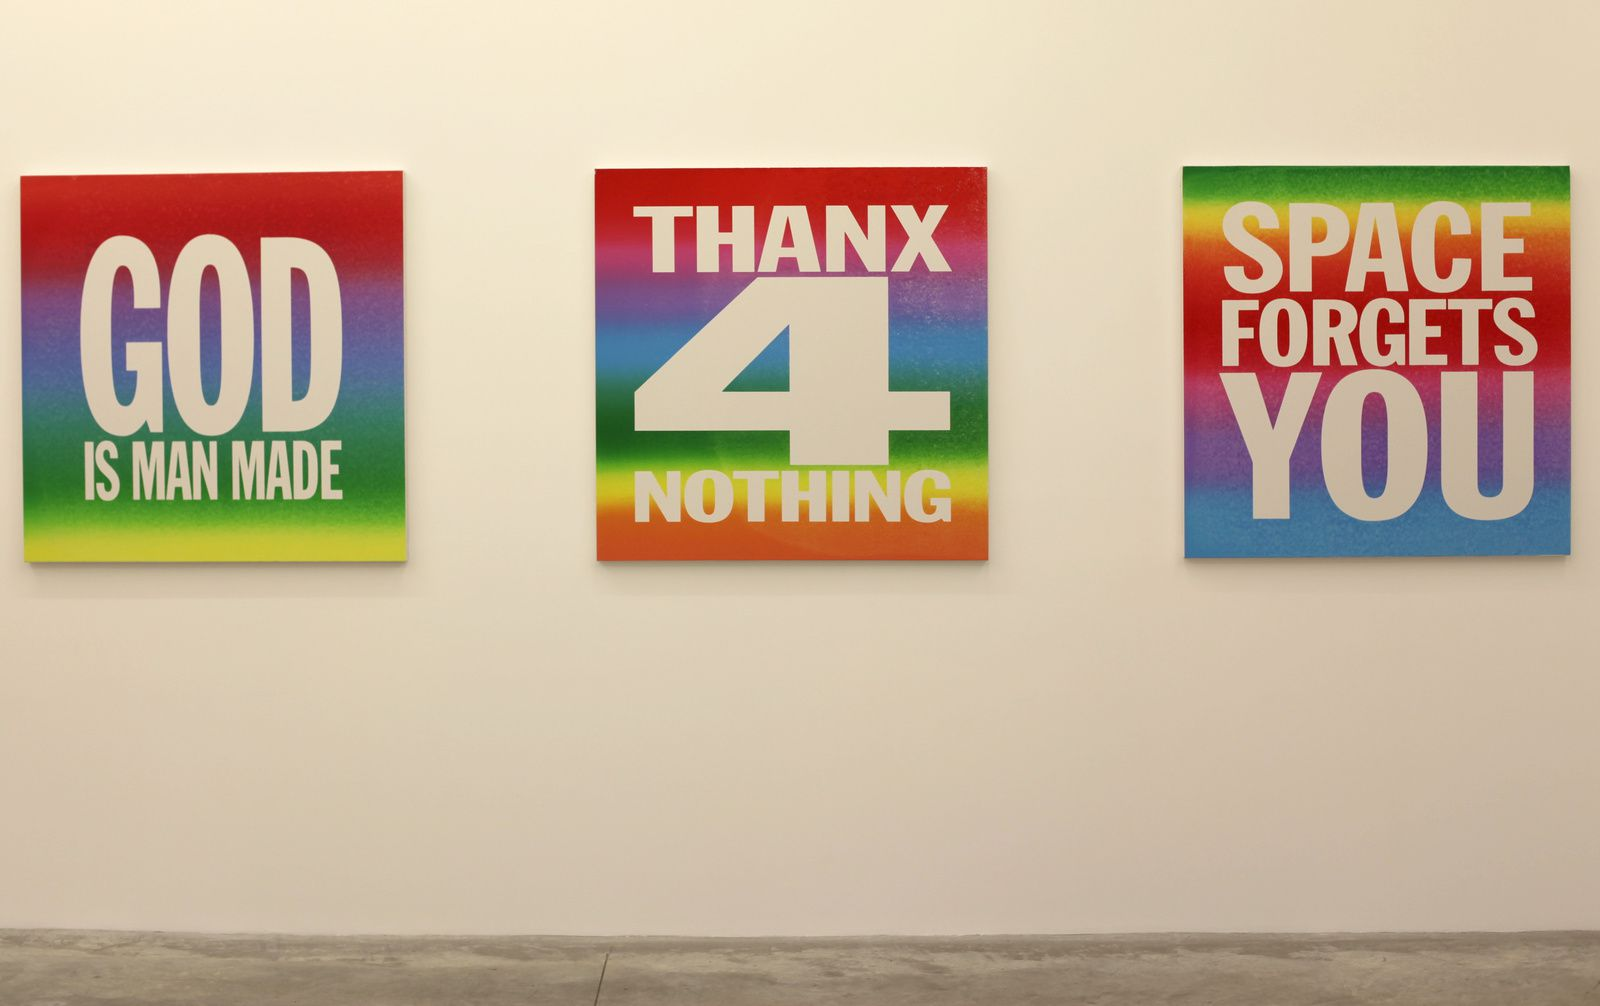 """""""God is man made"""" """"Thanx 4 nothing"""" """"Space forgets you"""", 2015 de John Giorno - Courtesy Almine Rech Gallery © Photo Éric Simon"""